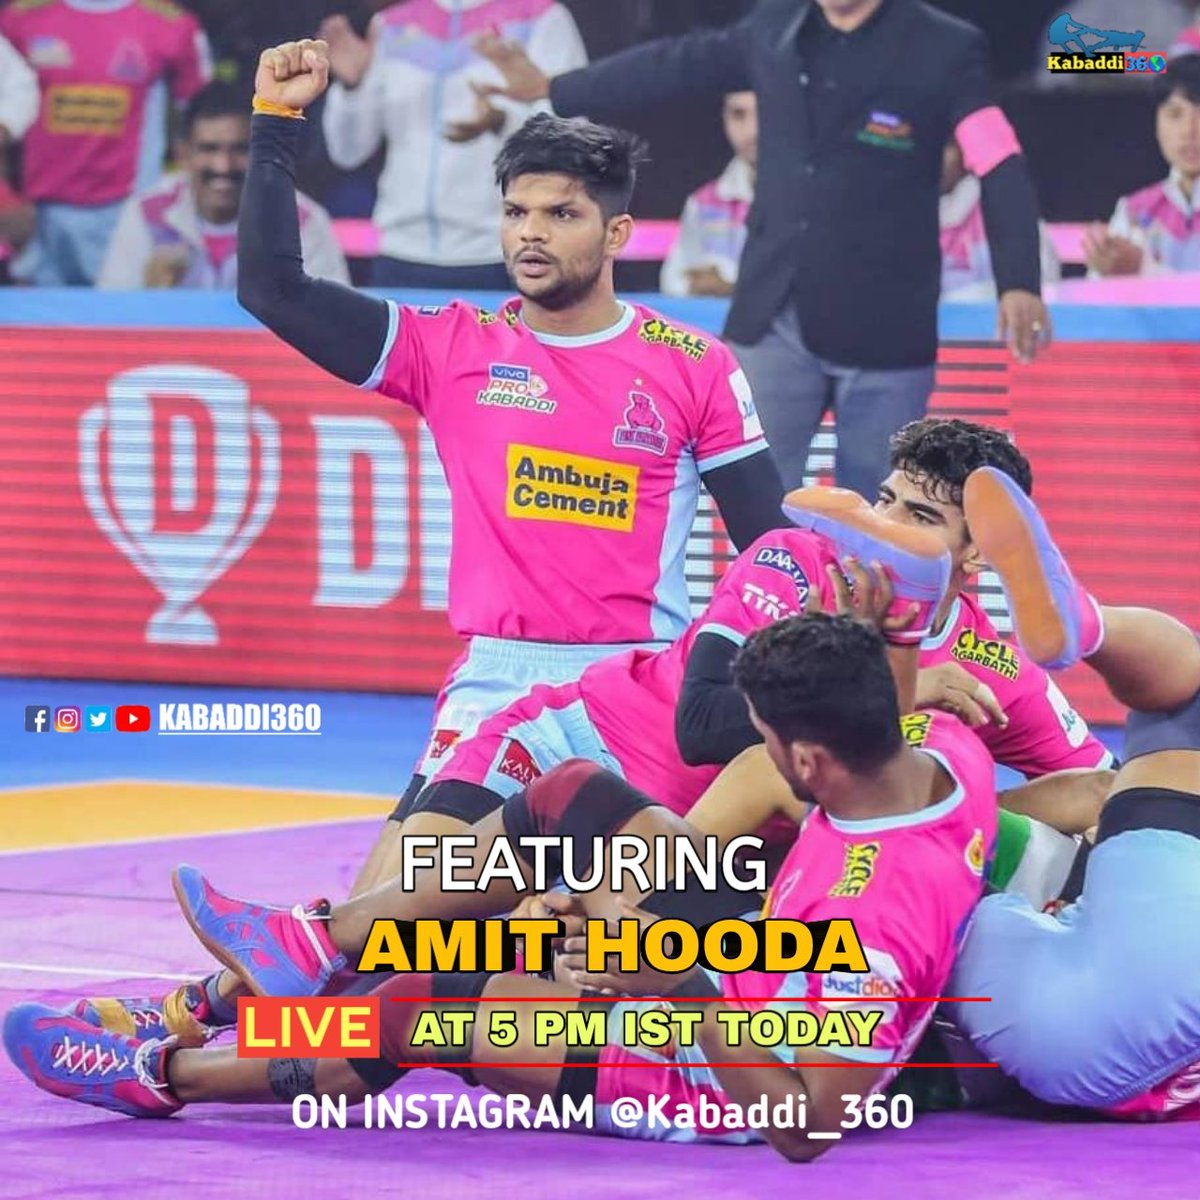 Catch @AmitHoodajpp LIVE on Kabaddi360's Instagram at 5 PM IST today!   #AmitHooda #Kabaddi360Live #Kabaddi360